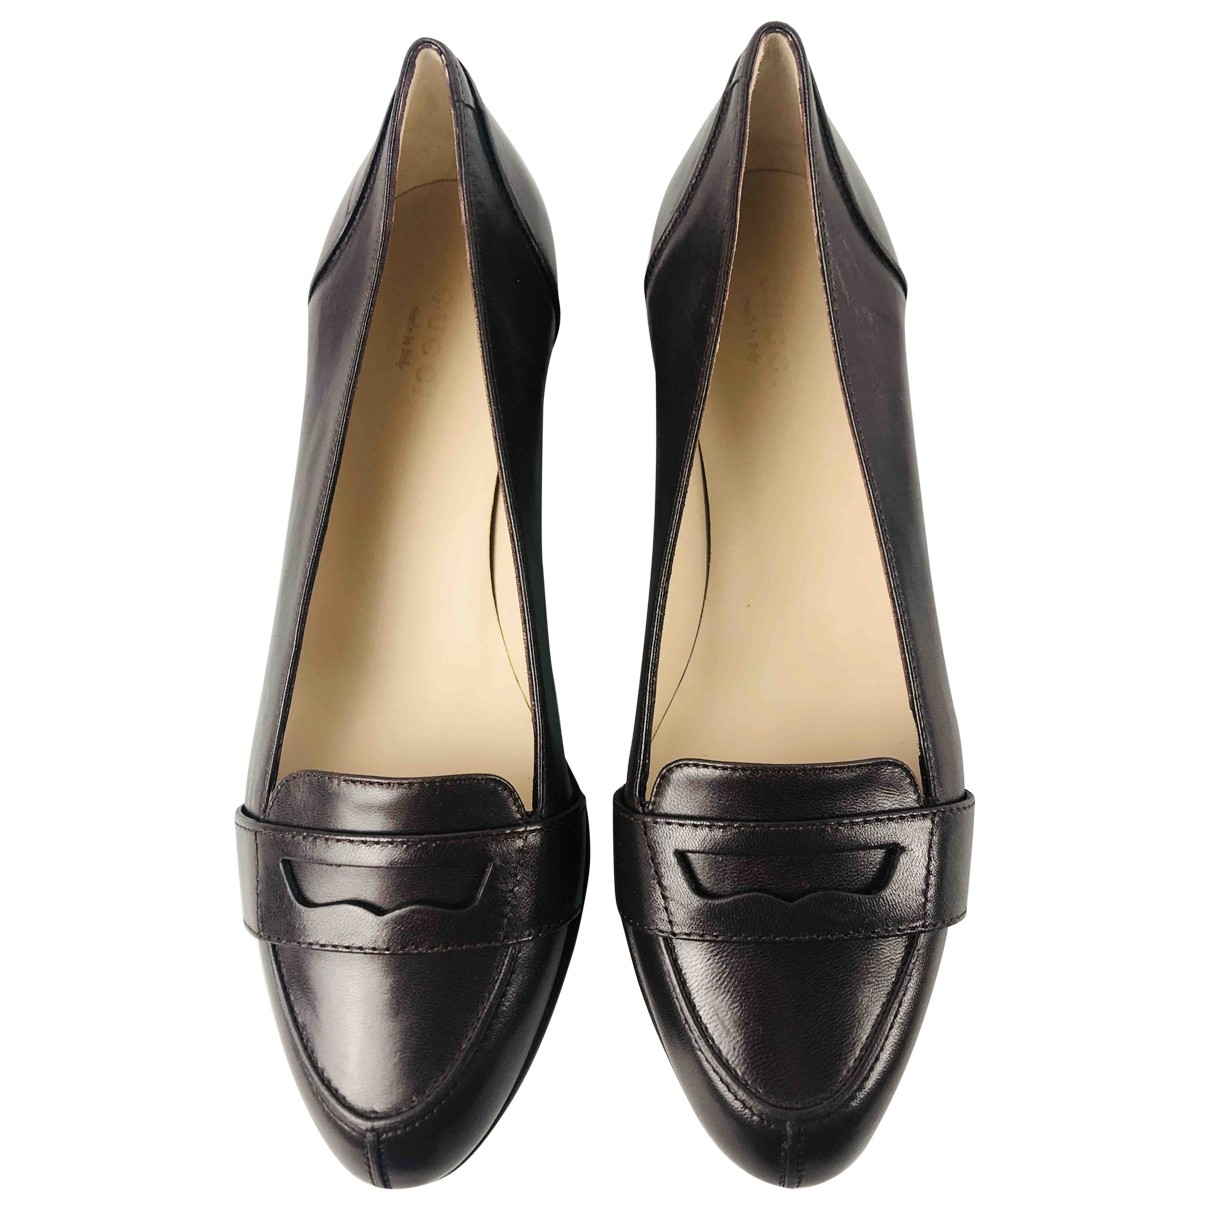 Gucci Brixton Brown Leather Flats for Women 36 EU